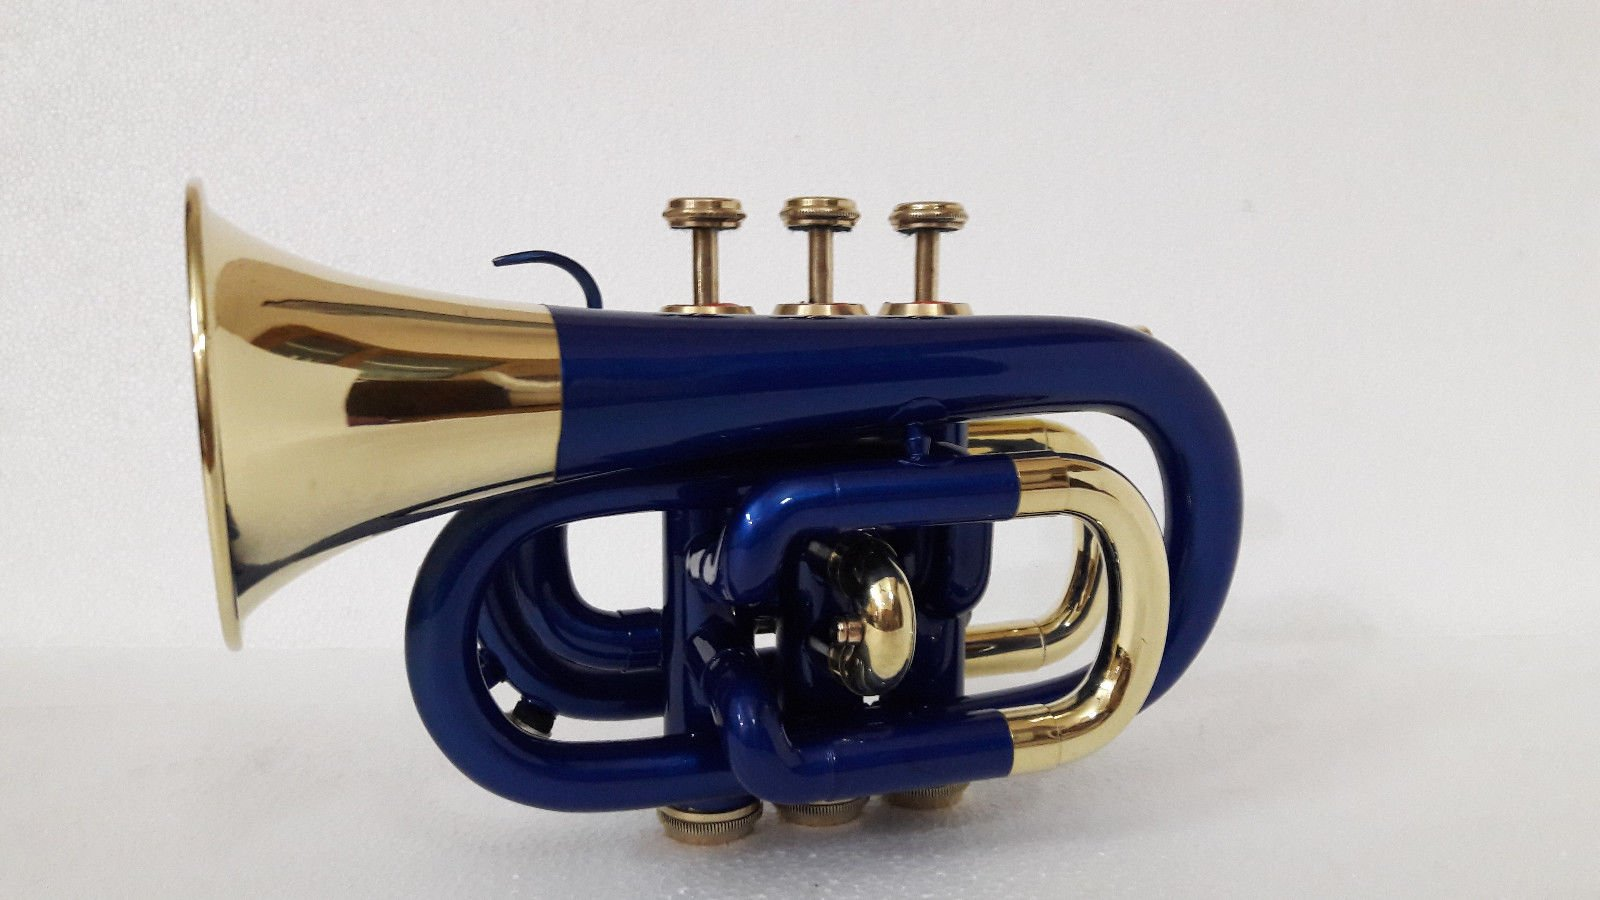 SUMMER VACATION SALE NEW BLUE BRASS FINISH Bb FLAT POCKET TRUMPET+FREE CASE+M/P by SAI MUSICAL (Image #3)